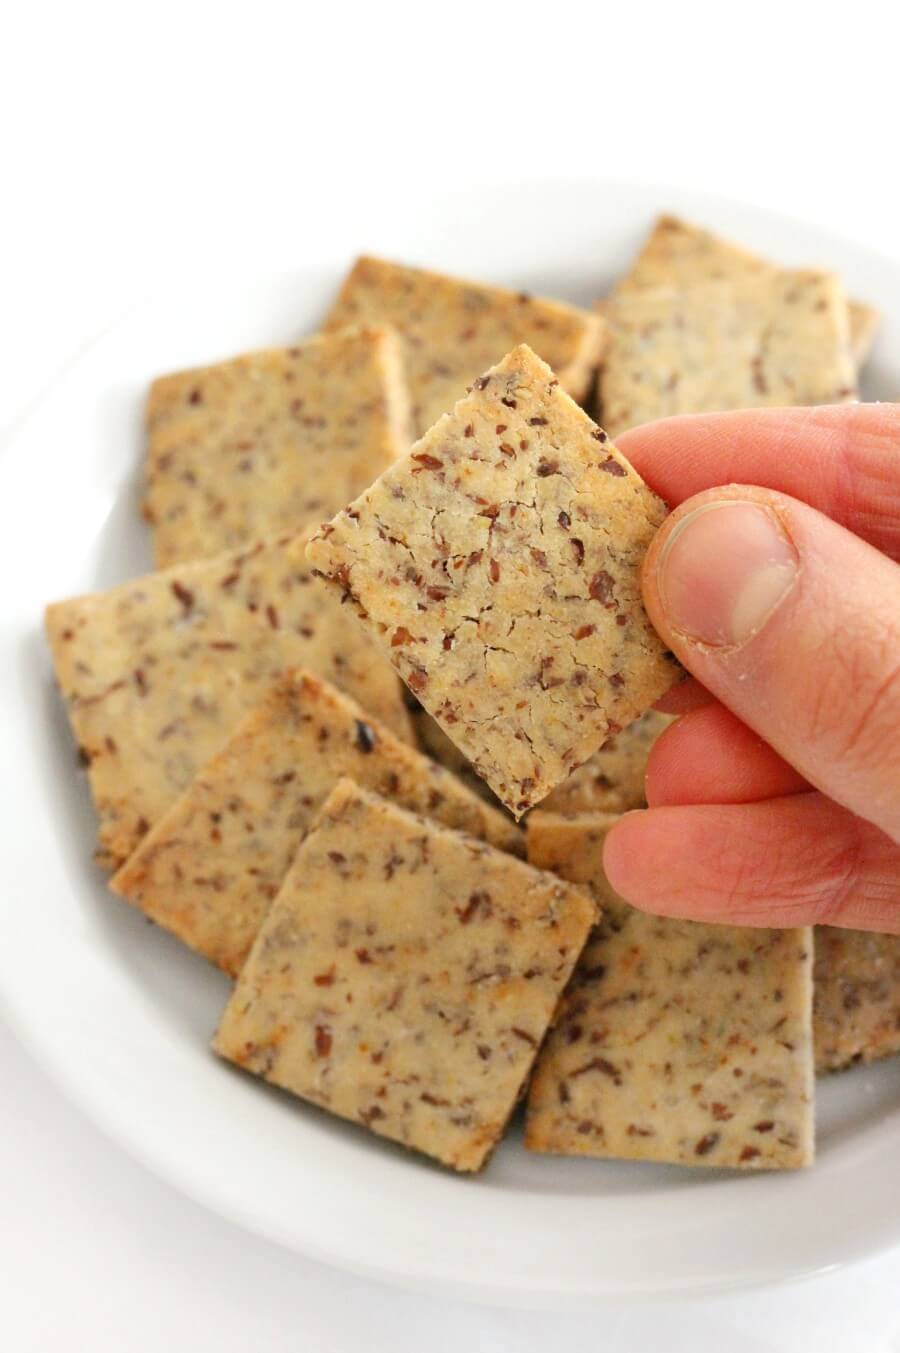 hand holding a gluten-free wheat thin cracker